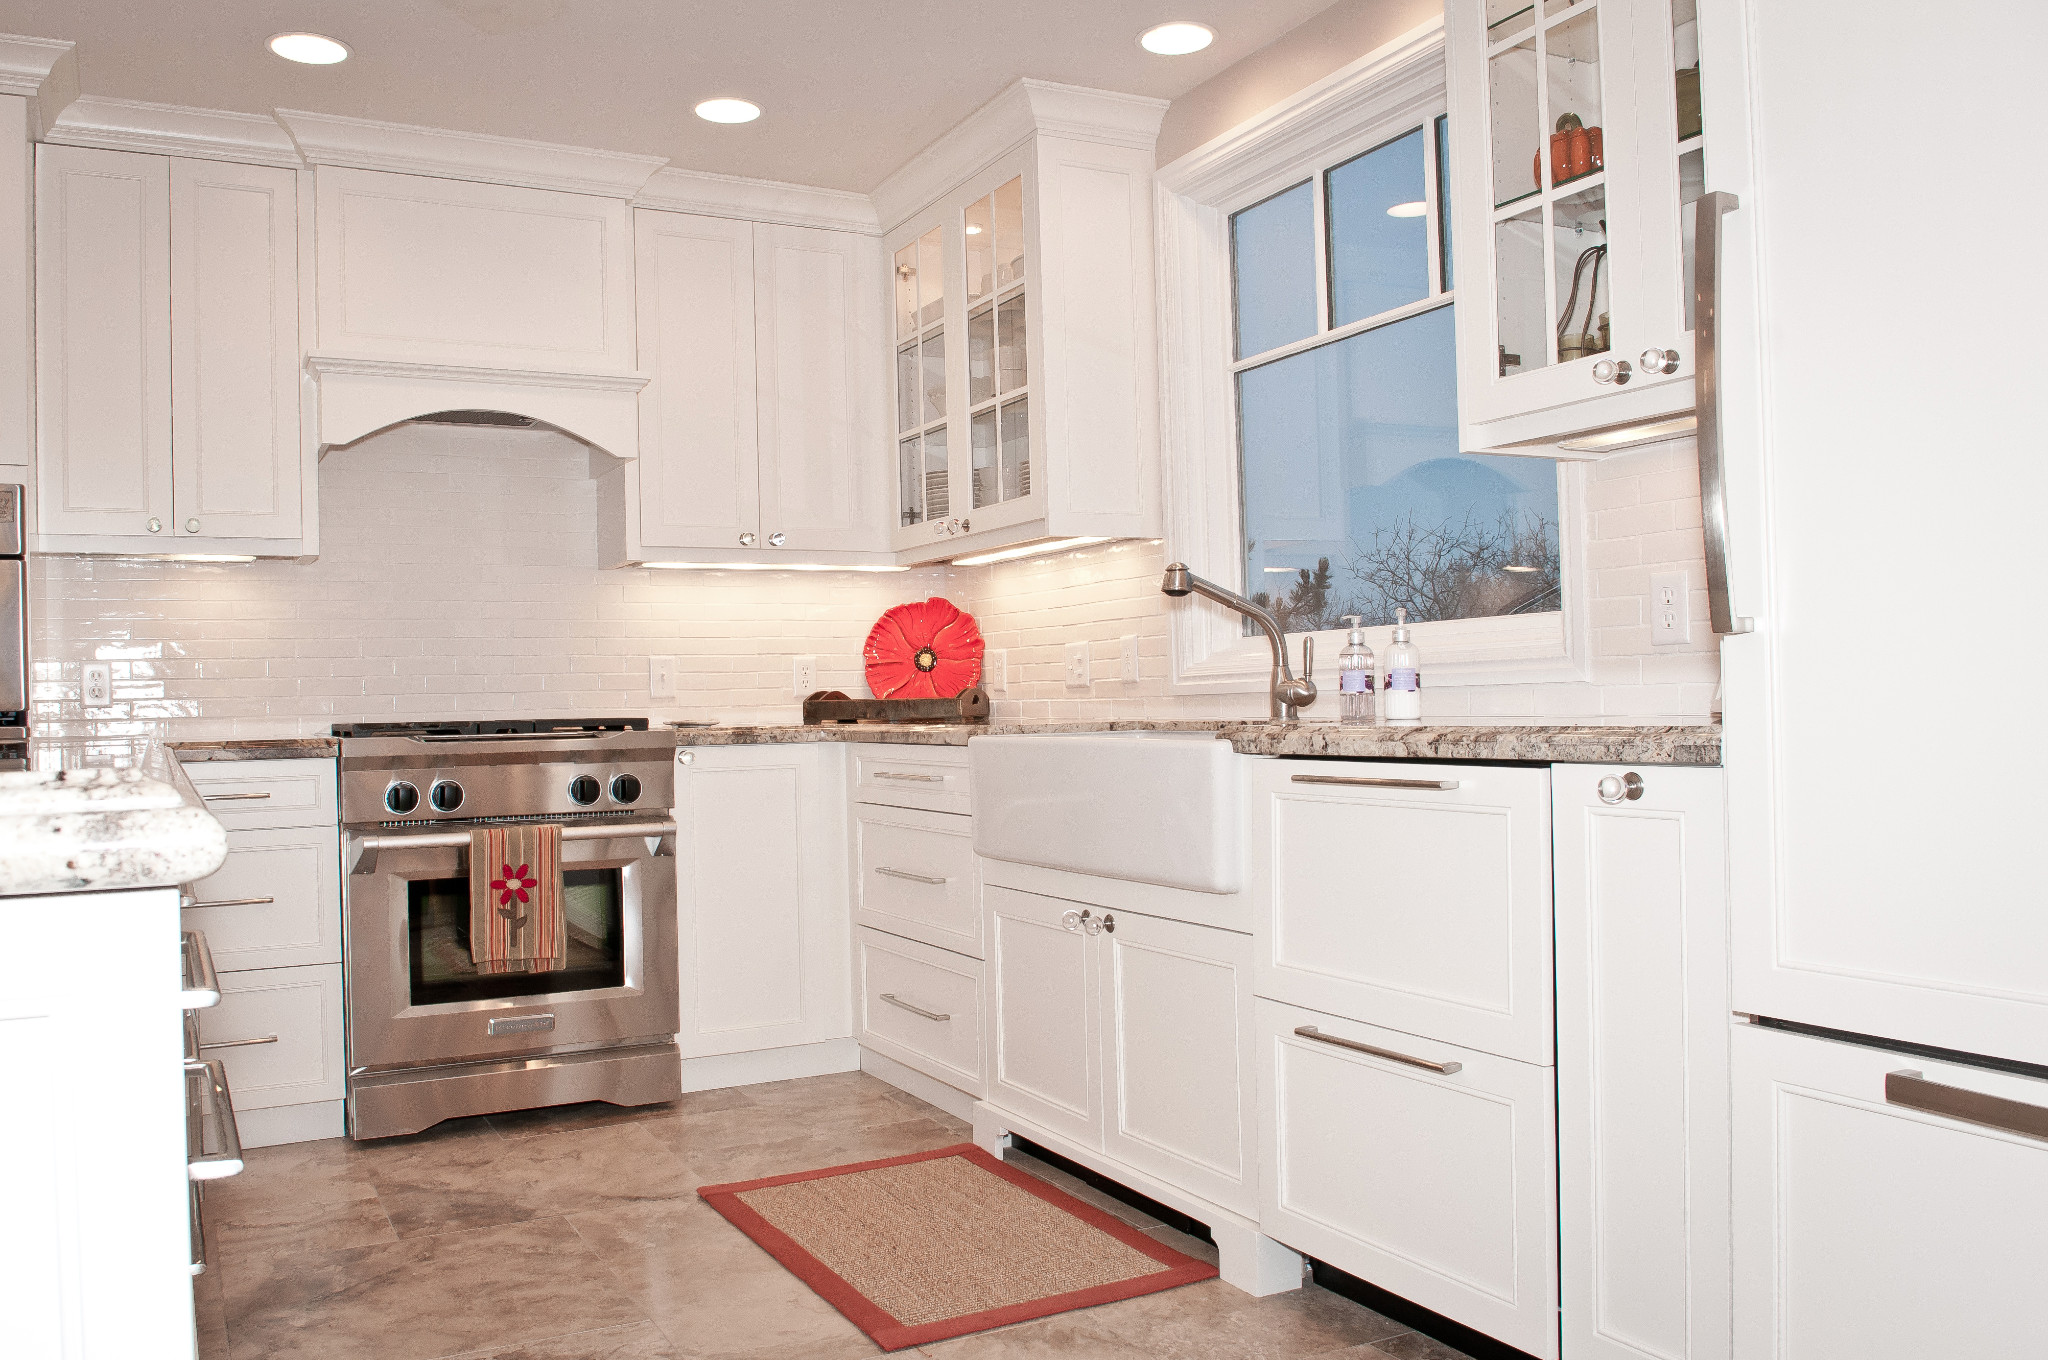 Legacy Mill & Cabinet NW llc - Custom Cabinets & Architectural ...